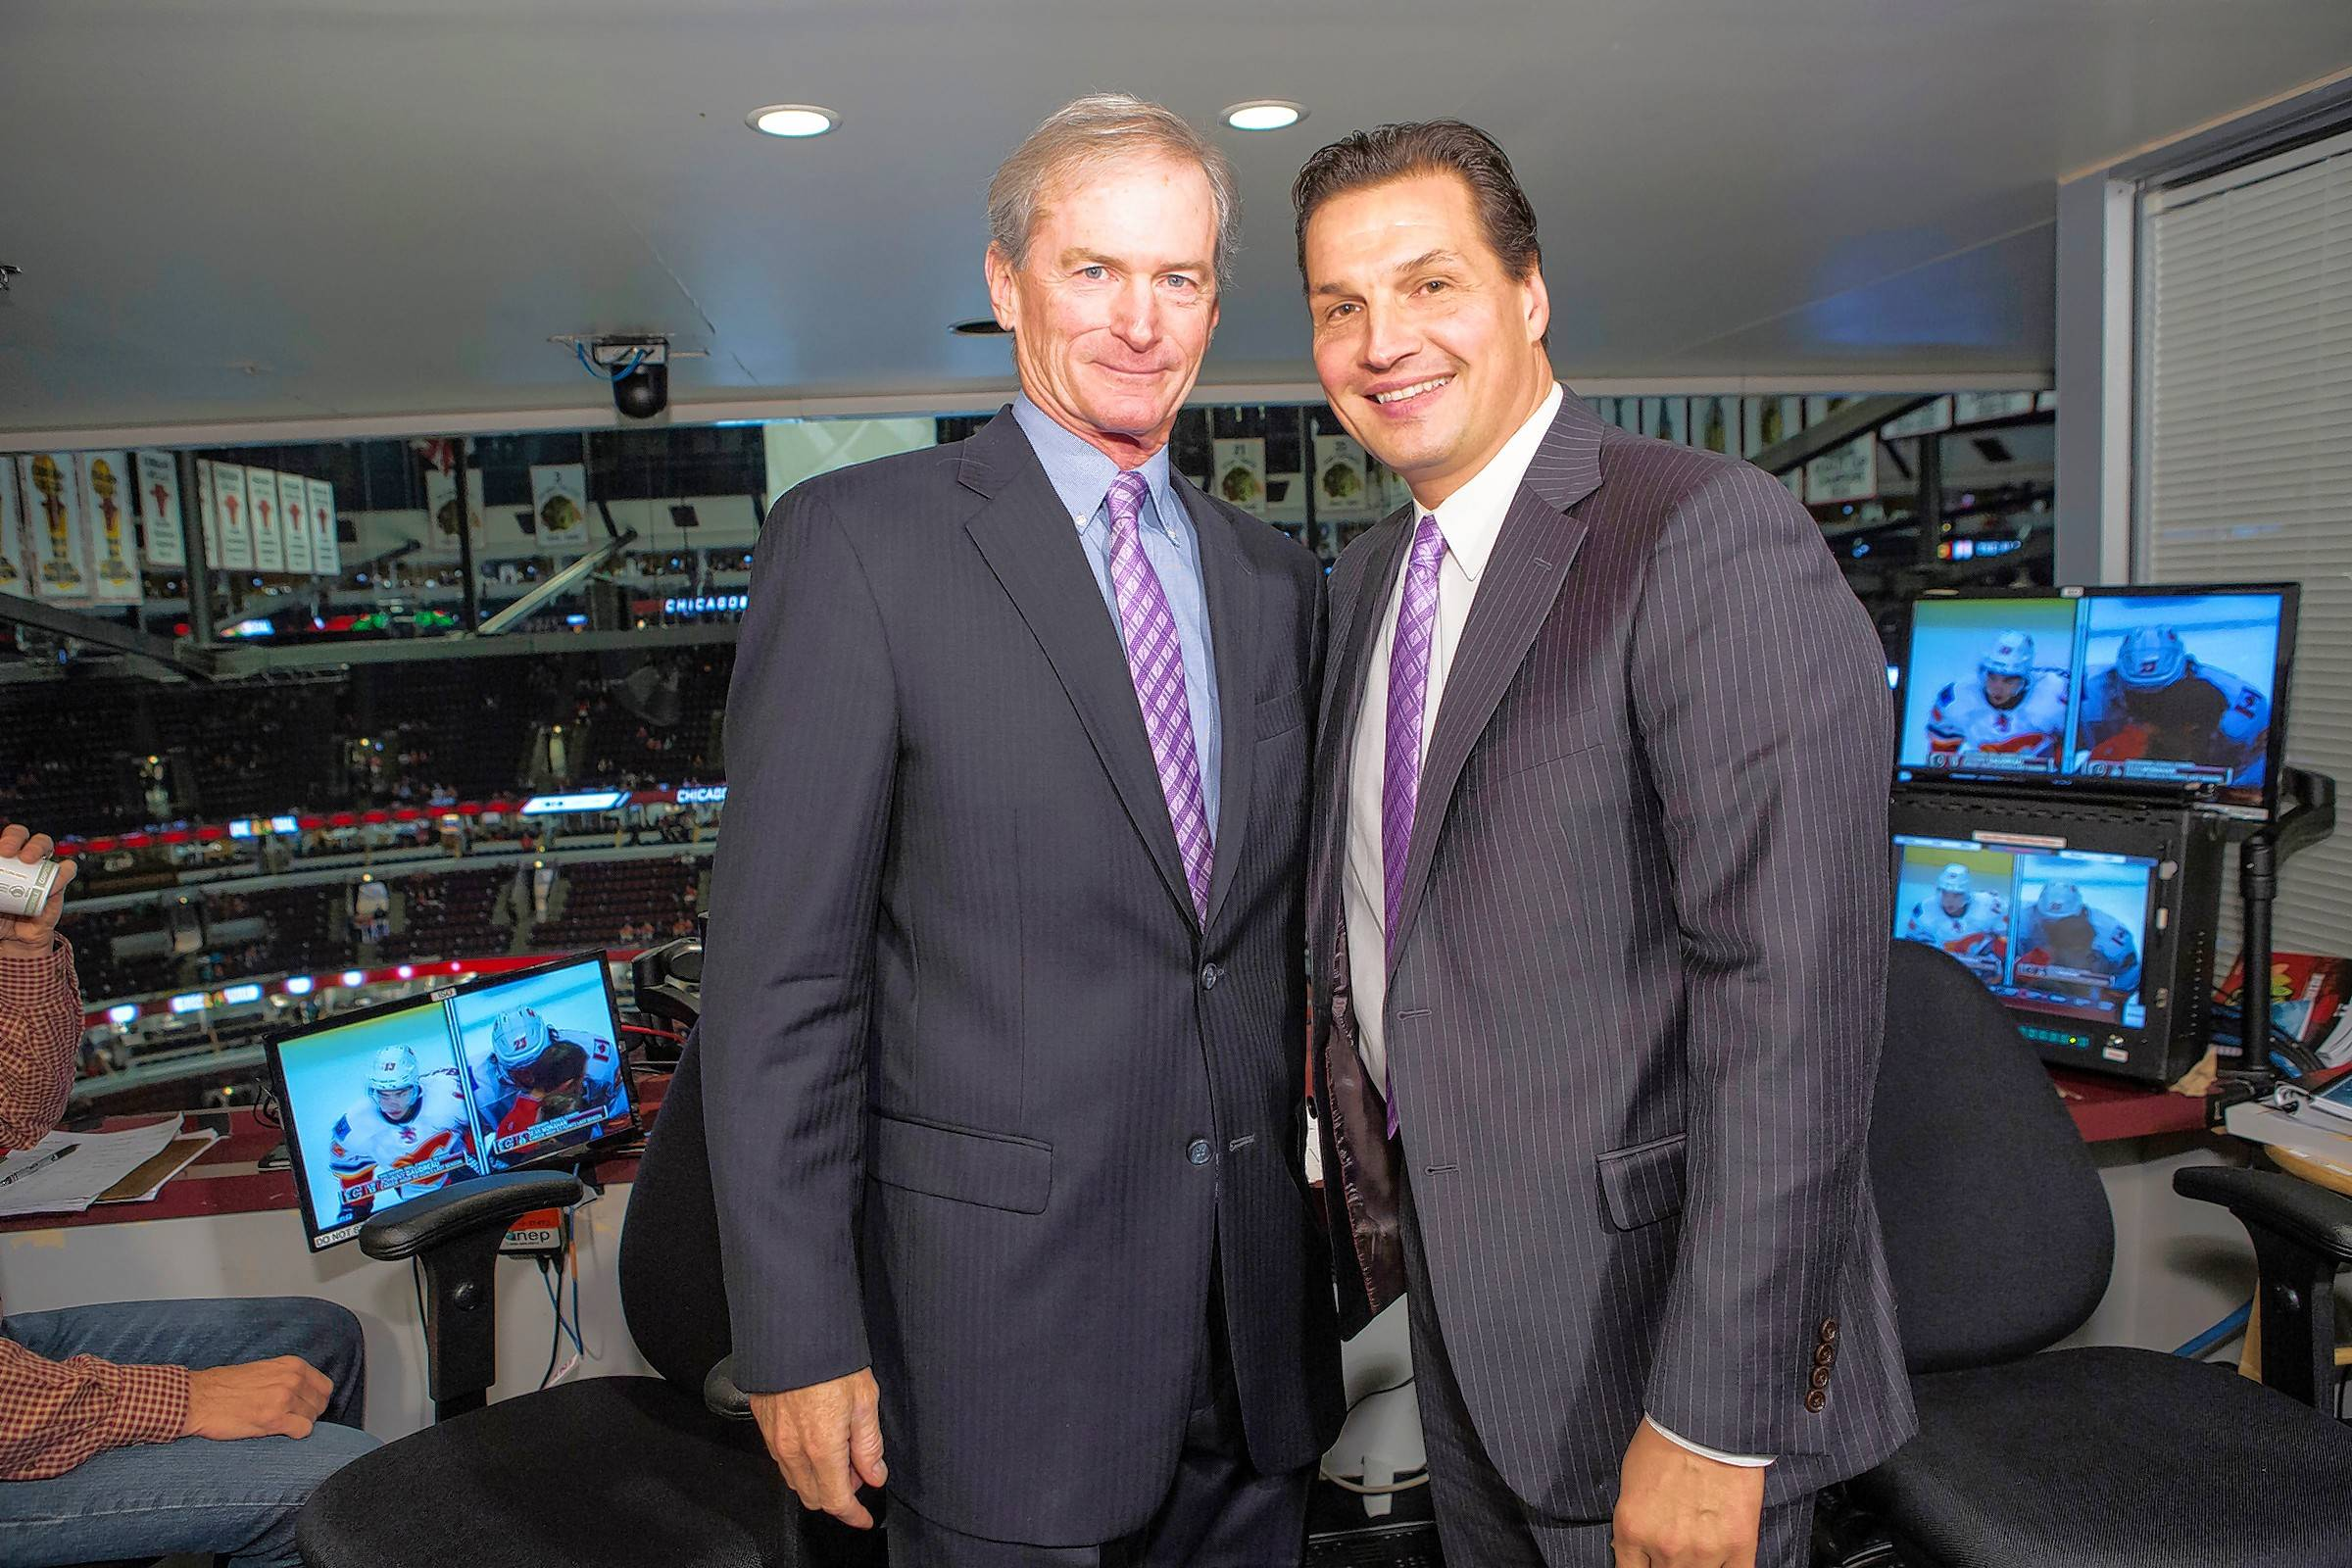 After cancer battle, Blackhawks' Pat Foley and Eddie Olczyk bond grows even stronger